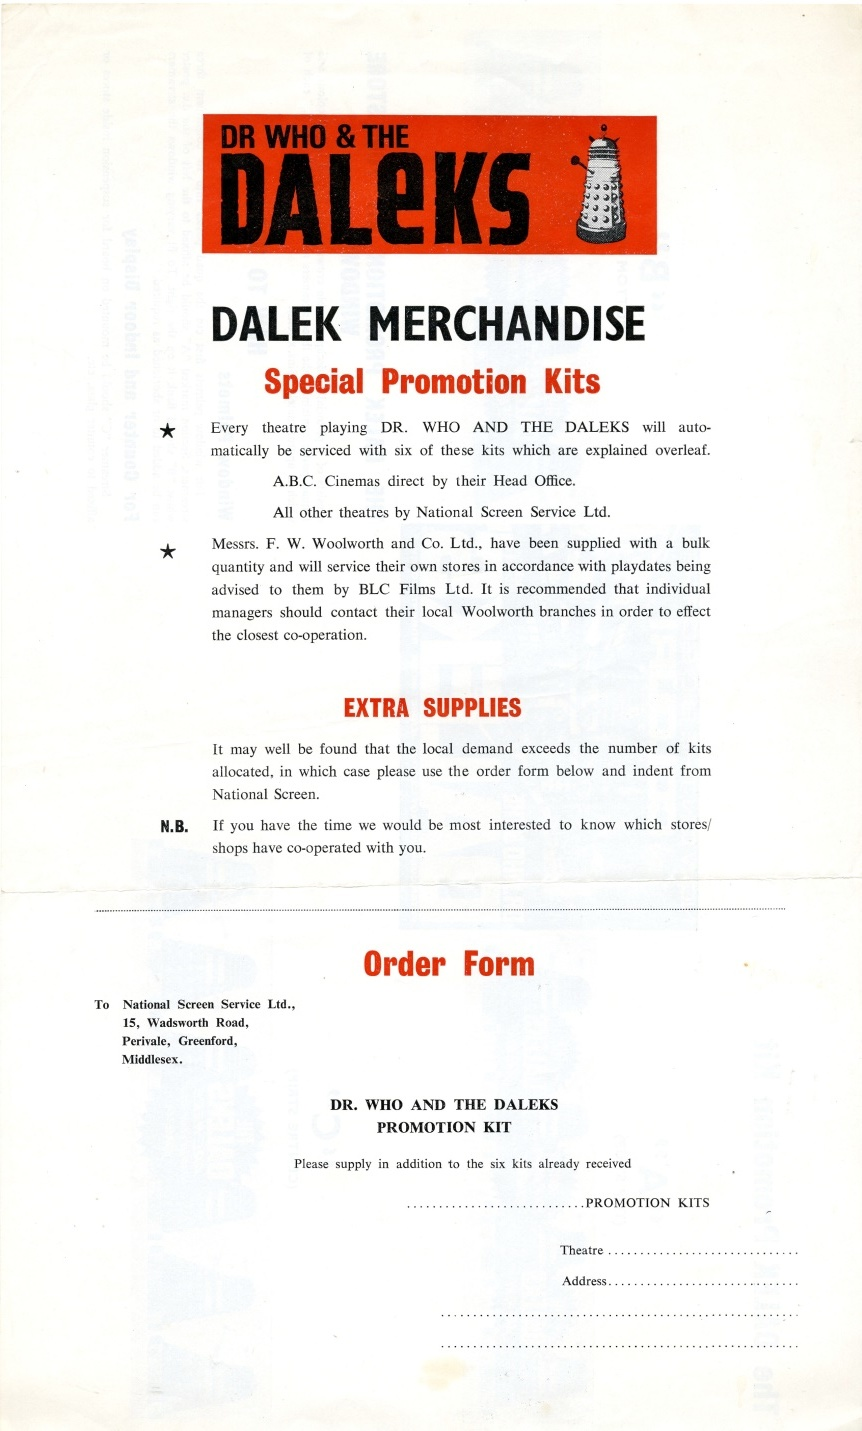 National Screen Service Dalek merchandise promotion kit flier (front)